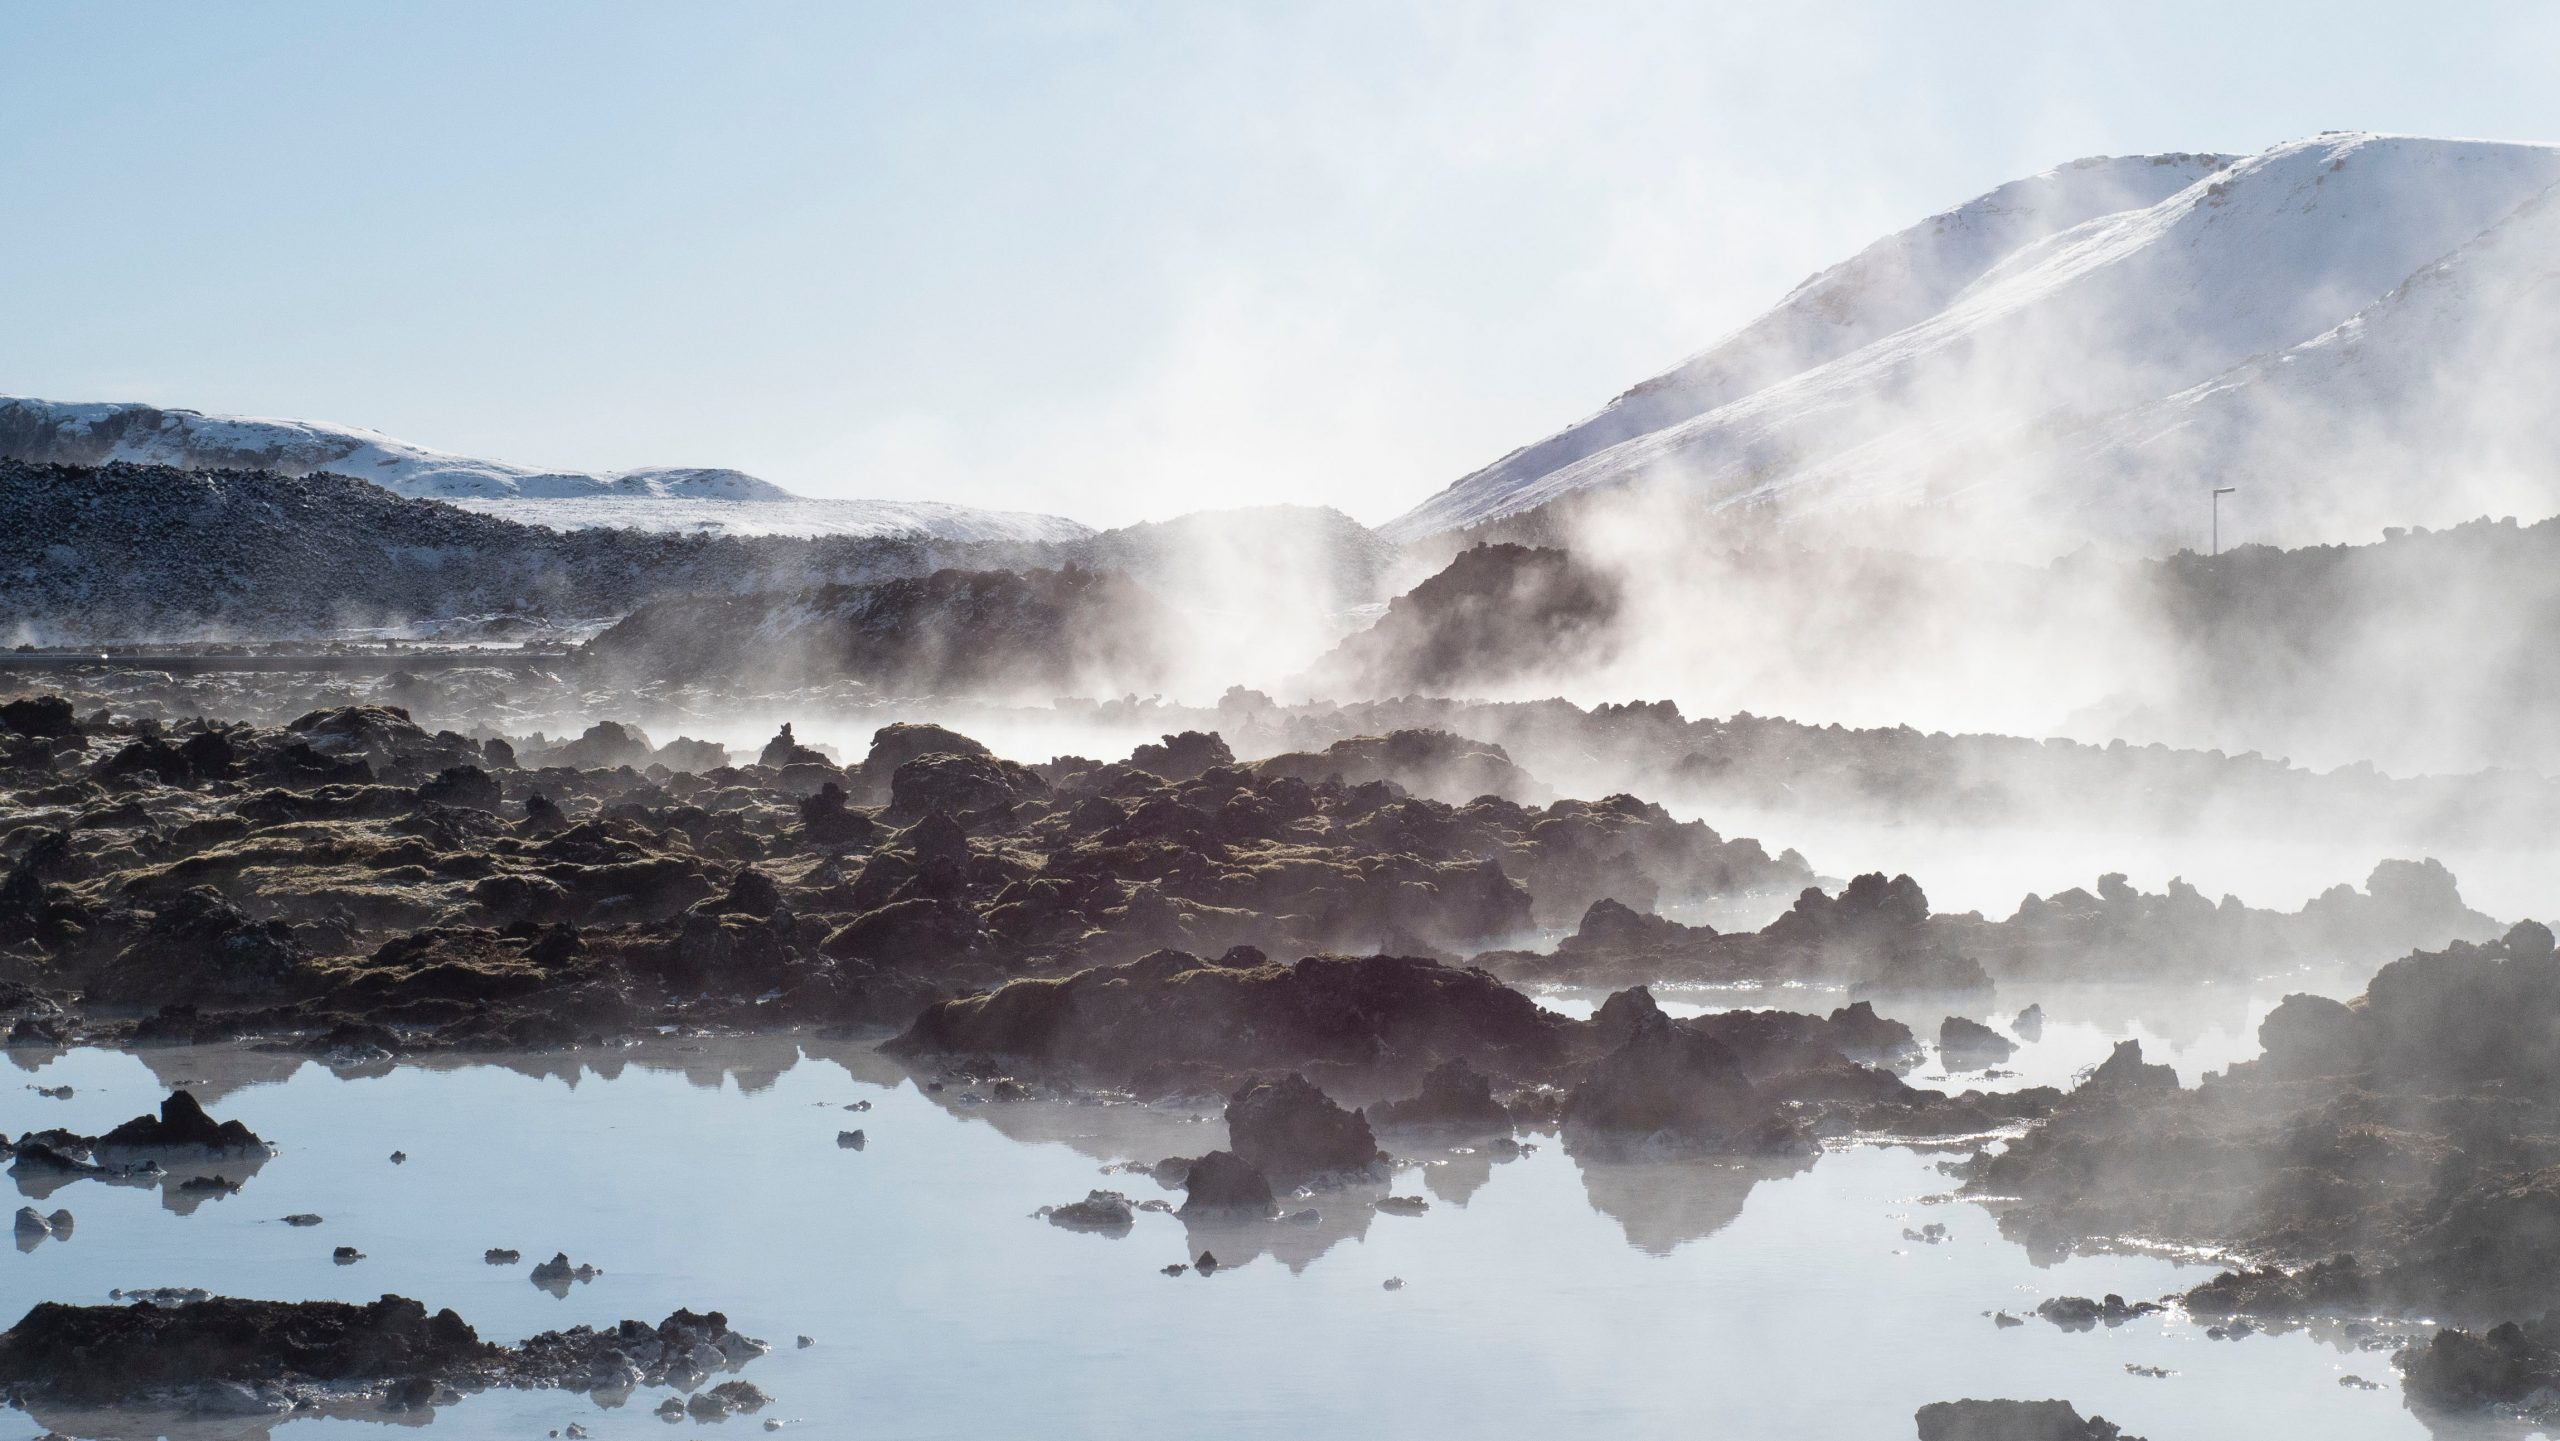 10 of the Best Hot Springs In the US